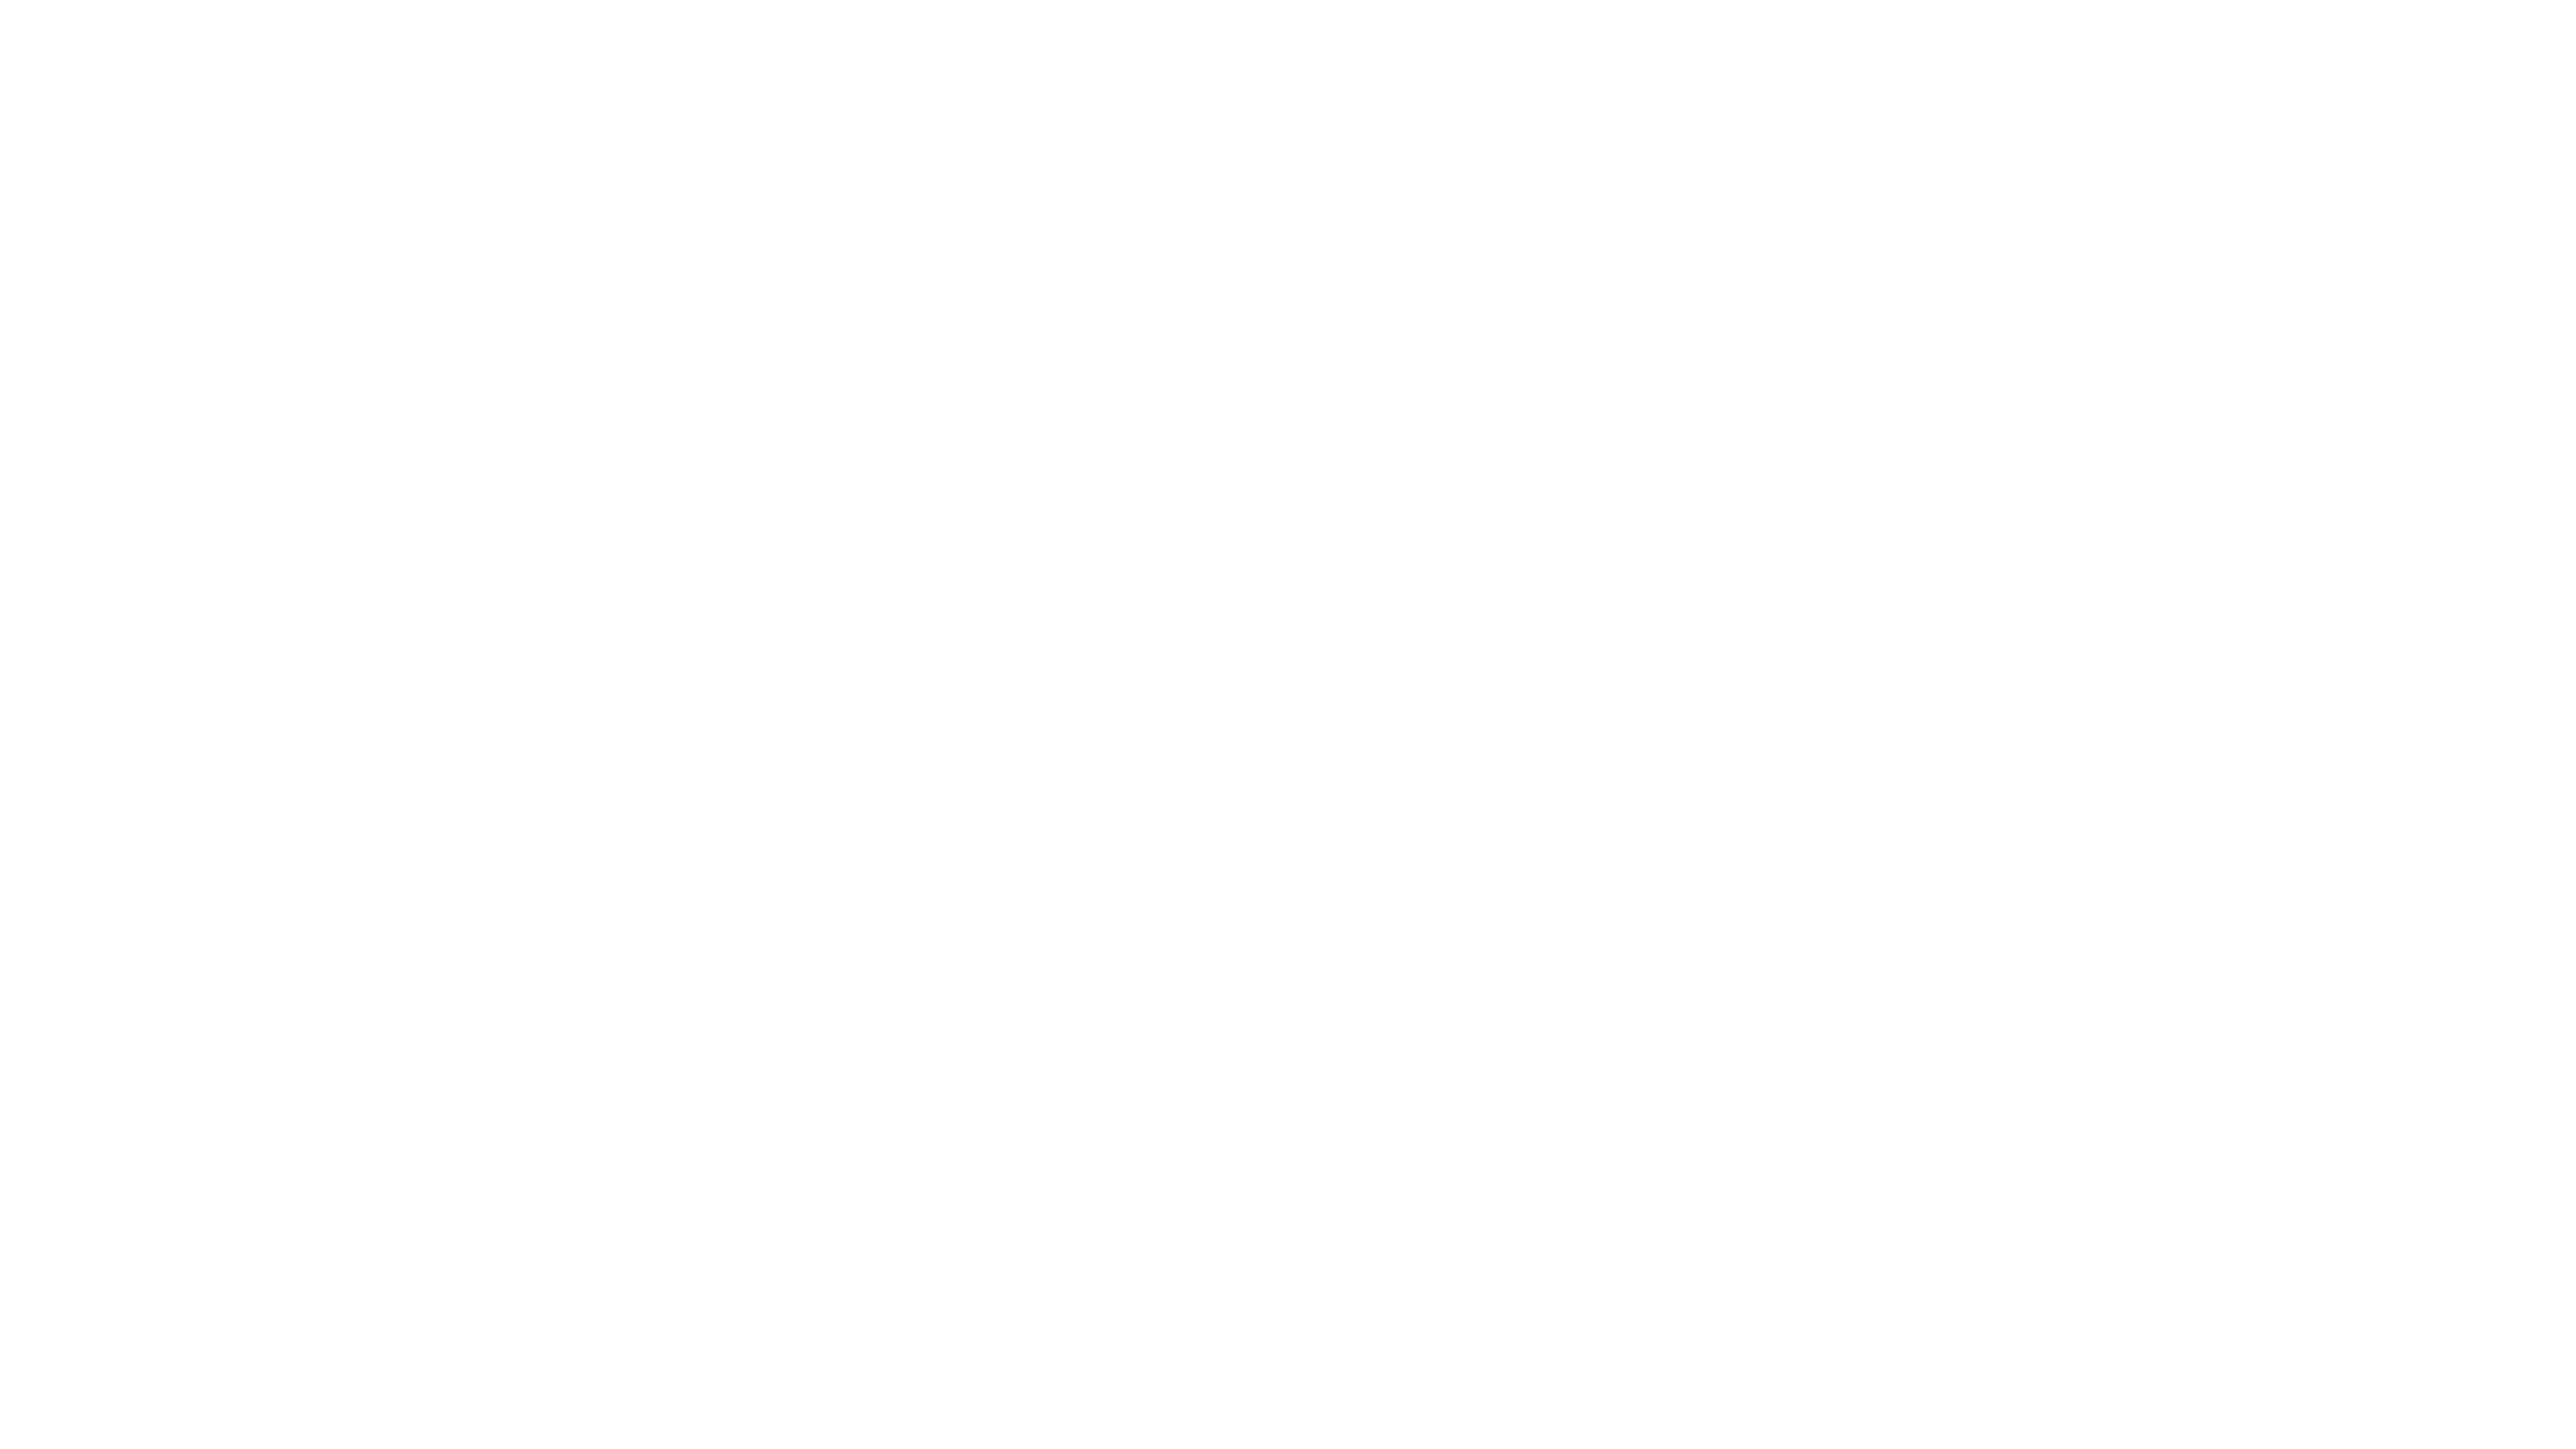 family groups-01